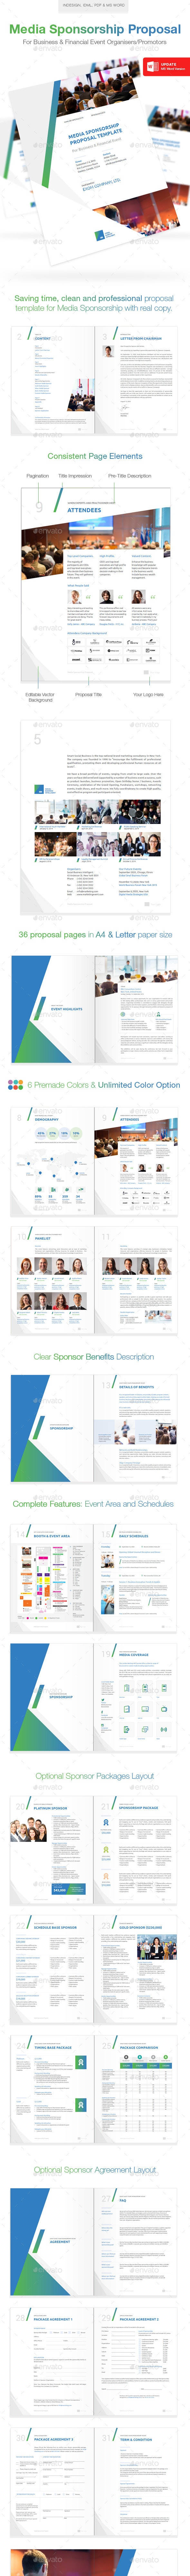 Clean Media Sponsorship Proposal Template - Proposals & Invoices Stationery